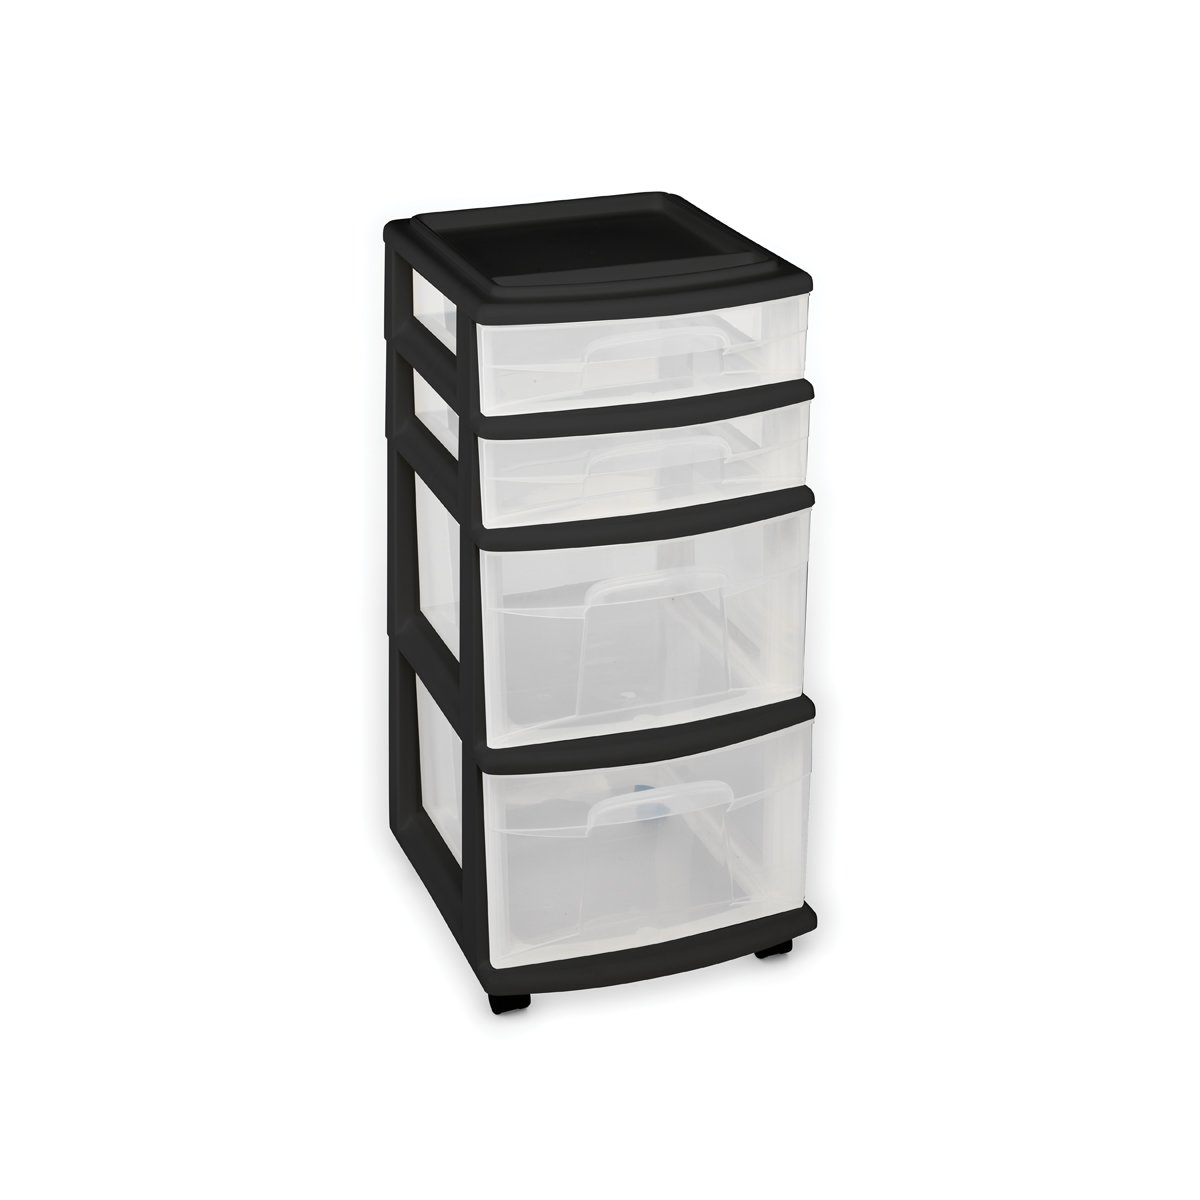 Homz Plastic 4 Drawer Medium Cart, Black Frame with Clear Drawers, Casters Included, Set of 1